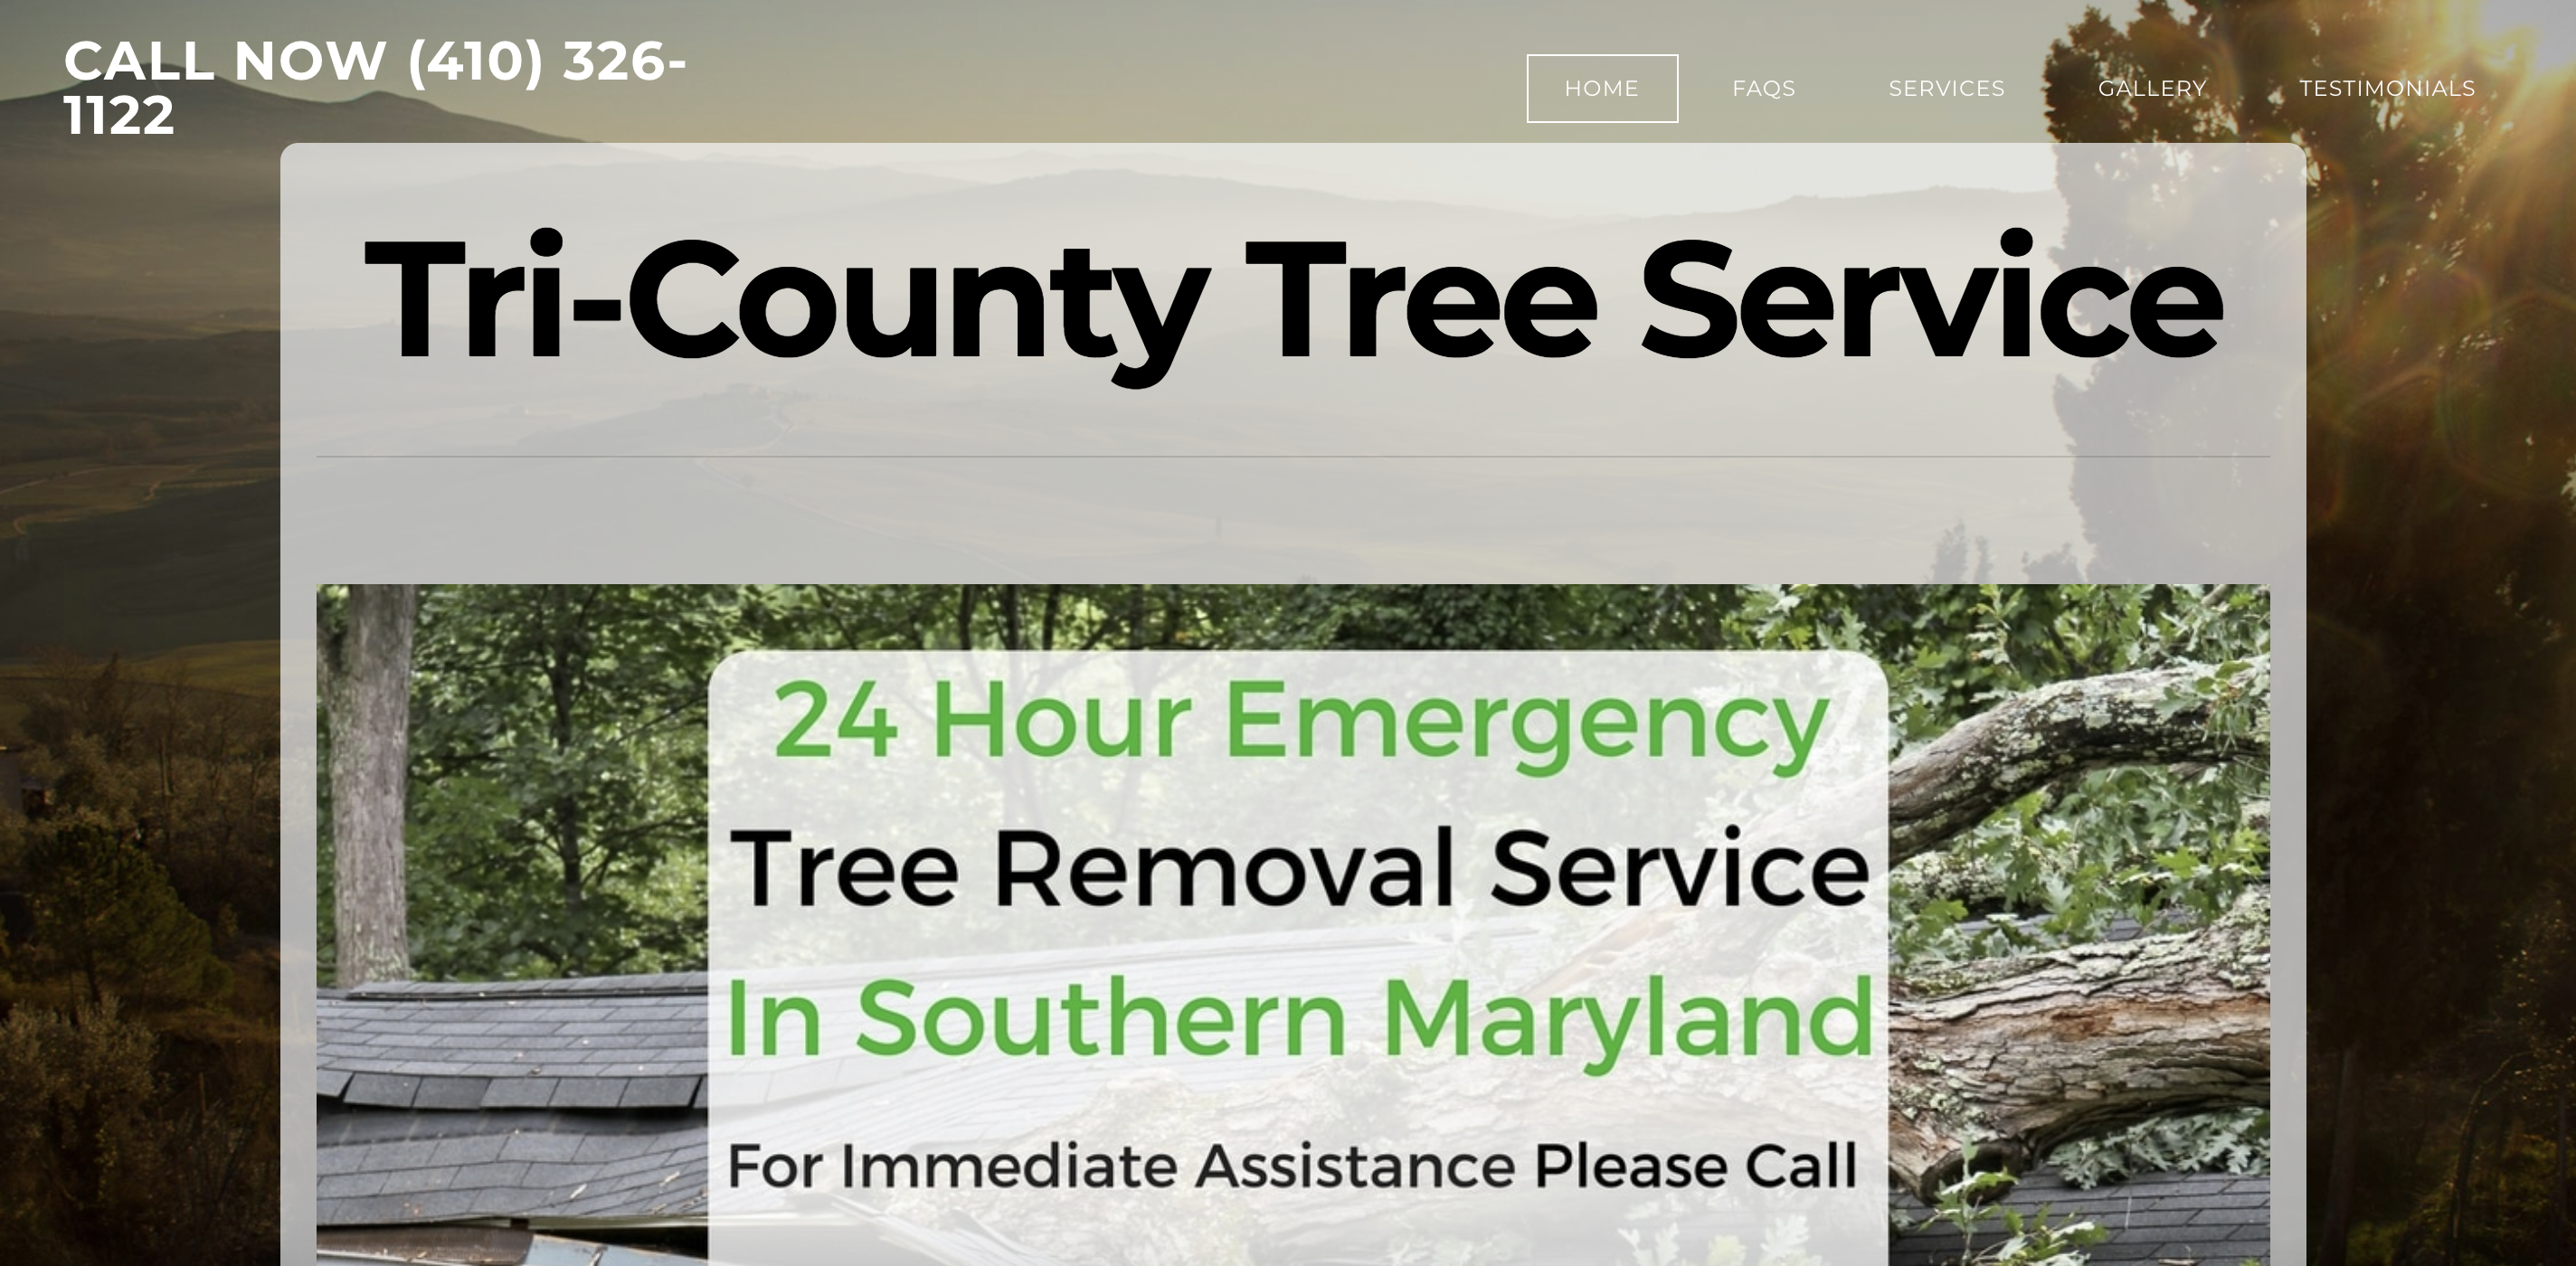 Our Work - Tri-County Tree